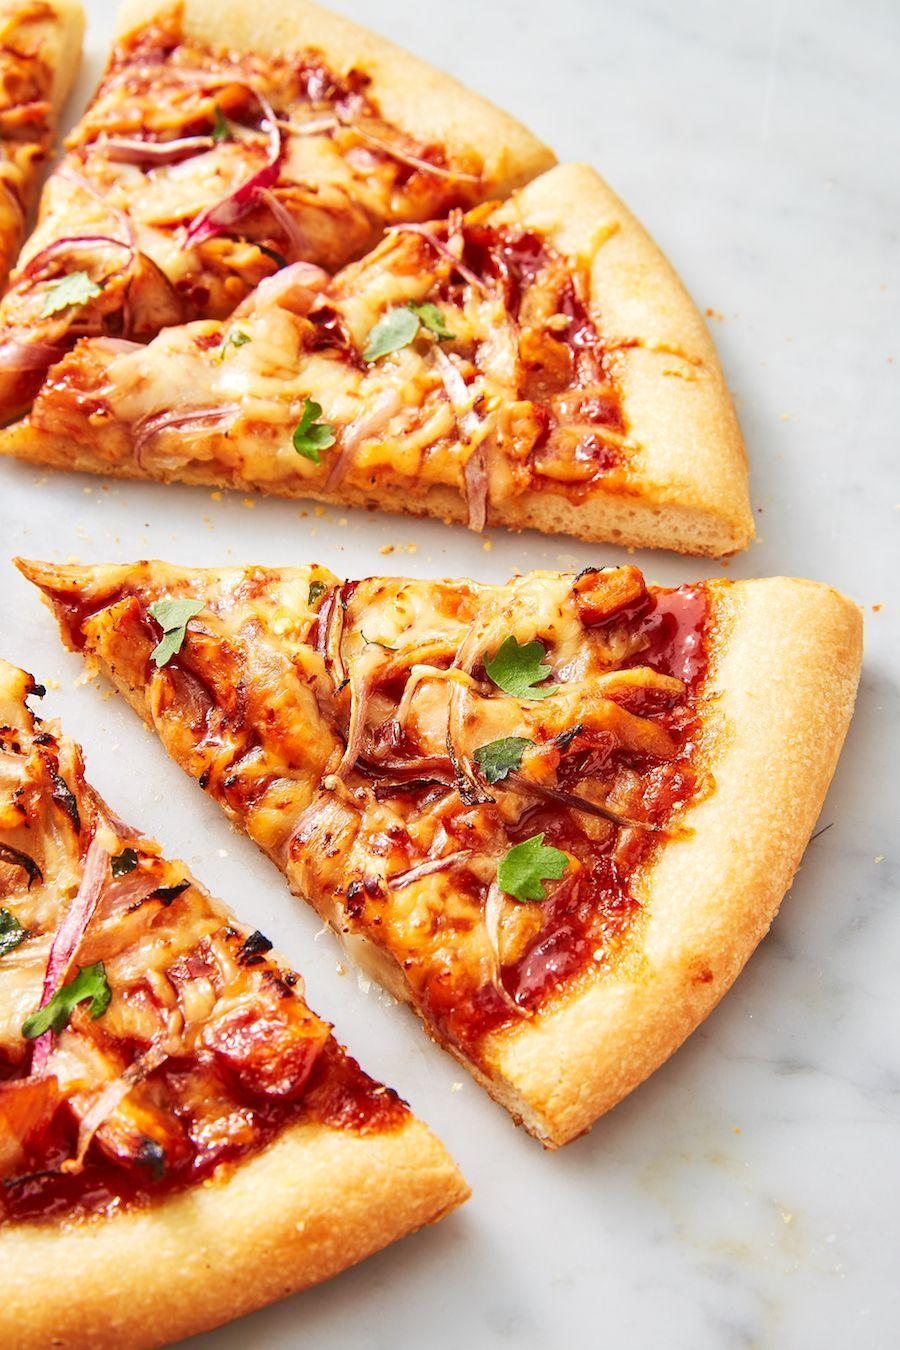 "<p>Skip take-out and make a pie yourself this spring!</p><p>Get the recipe from <a href=""https://www.delish.com/cooking/recipe-ideas/a25847047/bbq-chicken-pizza-recipe/"" rel=""nofollow noopener"" target=""_blank"" data-ylk=""slk:Delish"" class=""link rapid-noclick-resp"">Delish</a>.</p>"